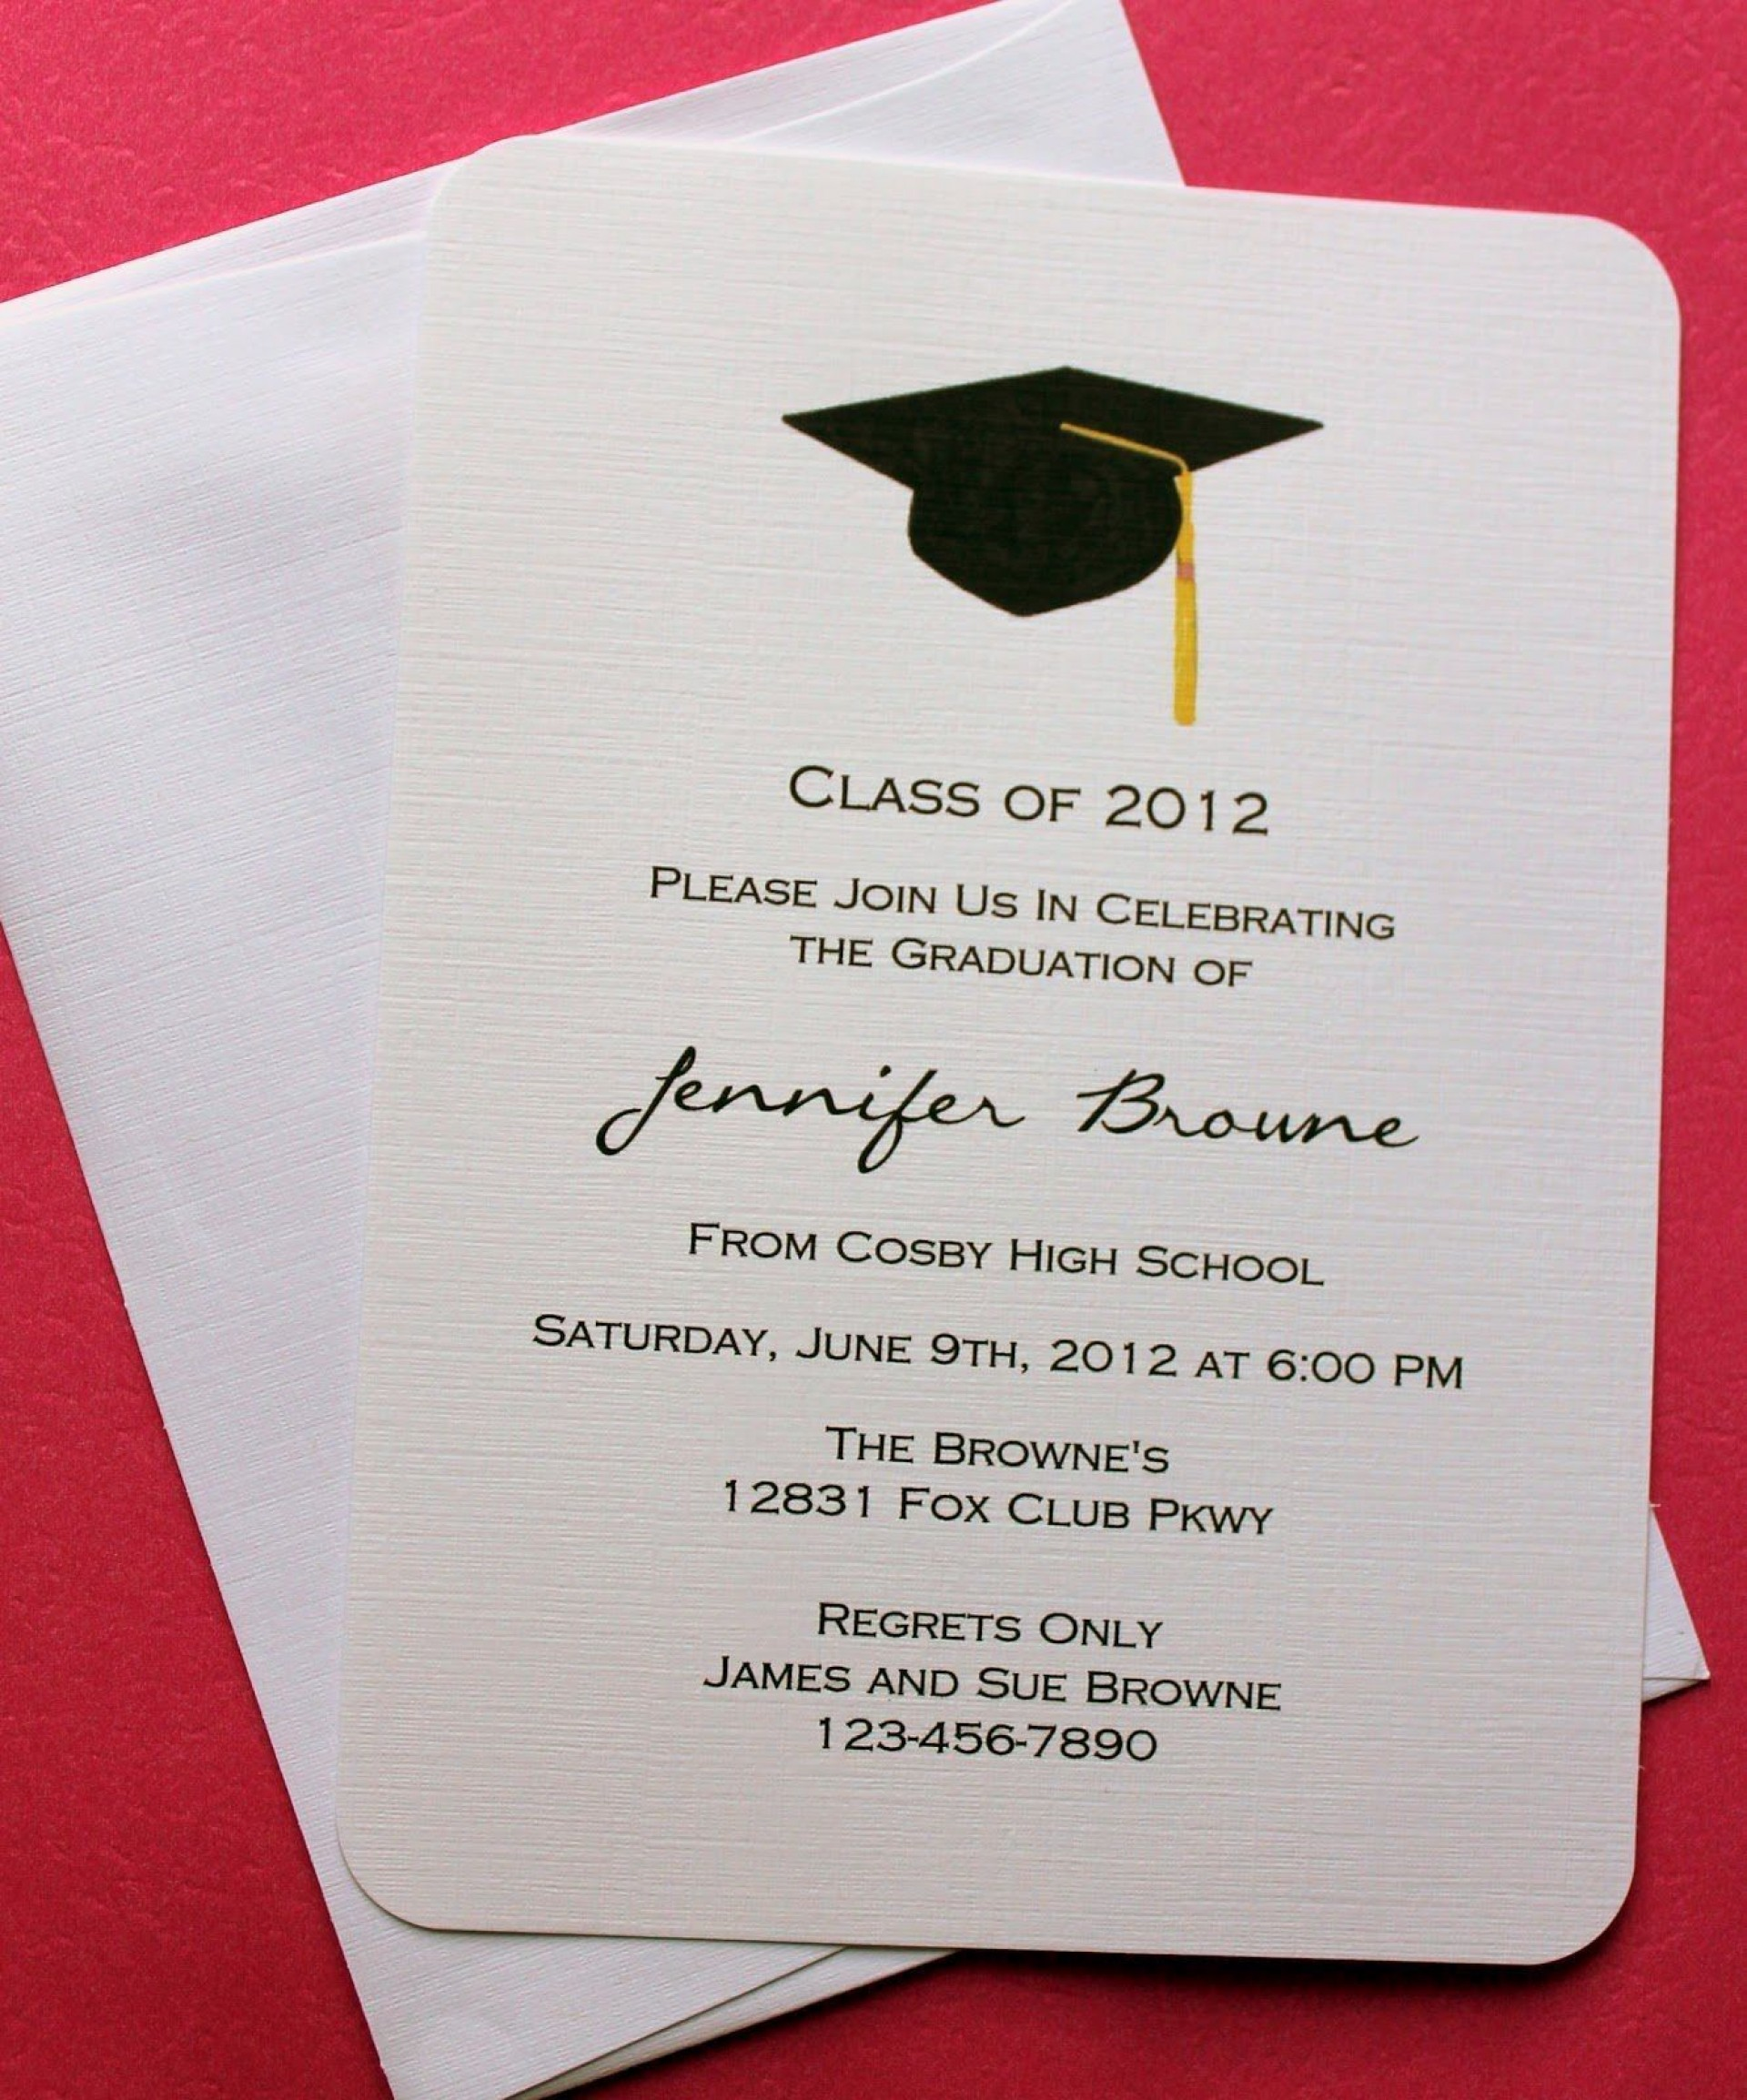 006 Remarkable Microsoft Word Graduation Party Invitation Template Idea 1920